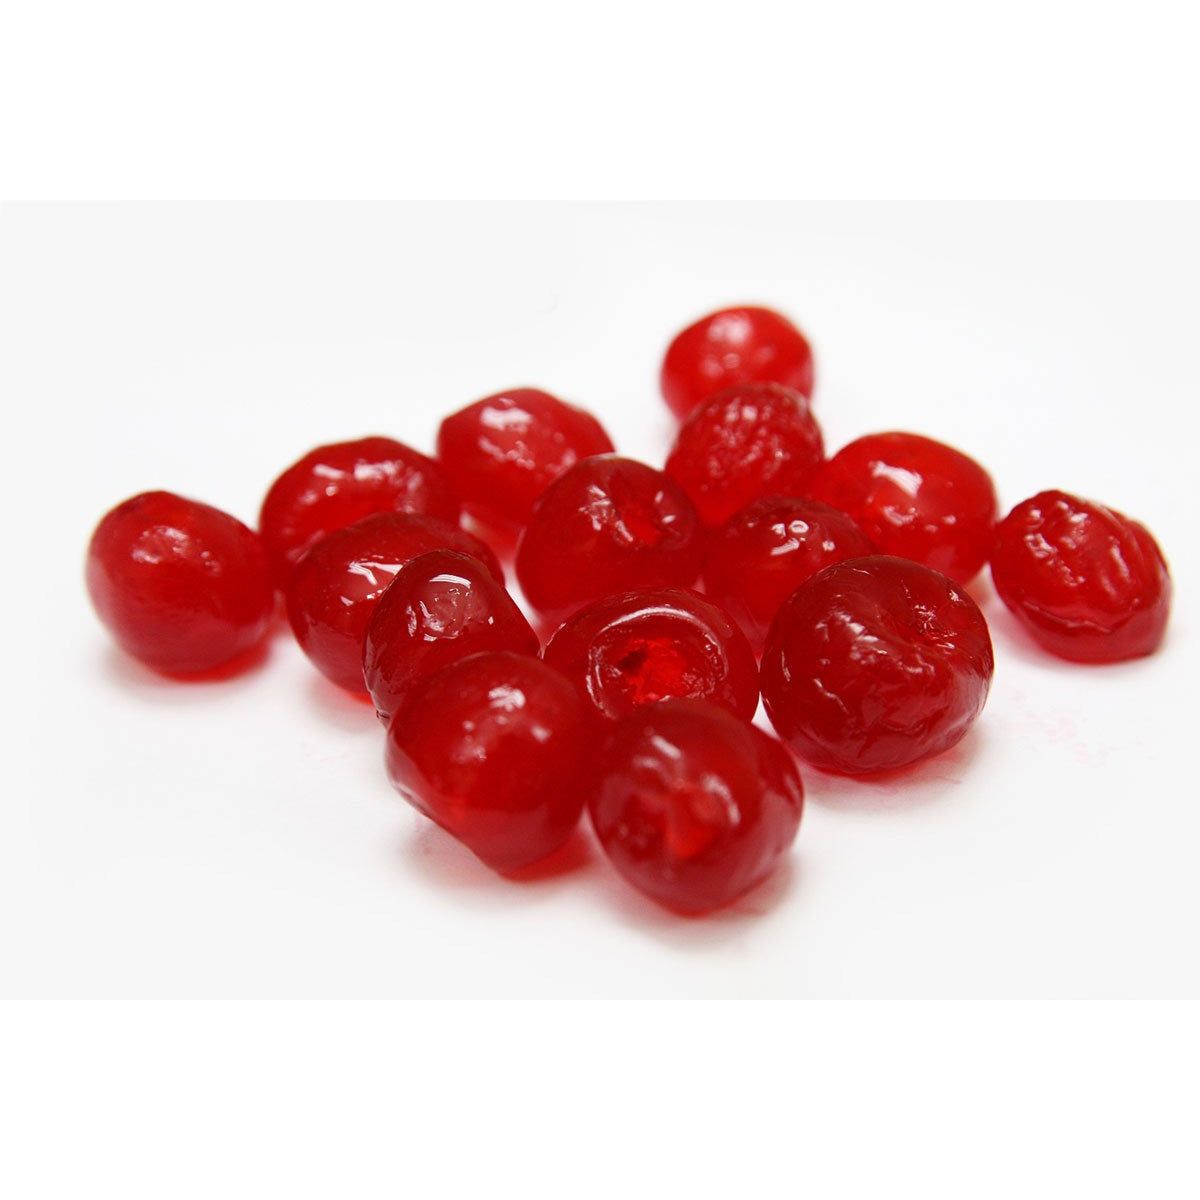 Maraschino Cherries Red 1x4 L